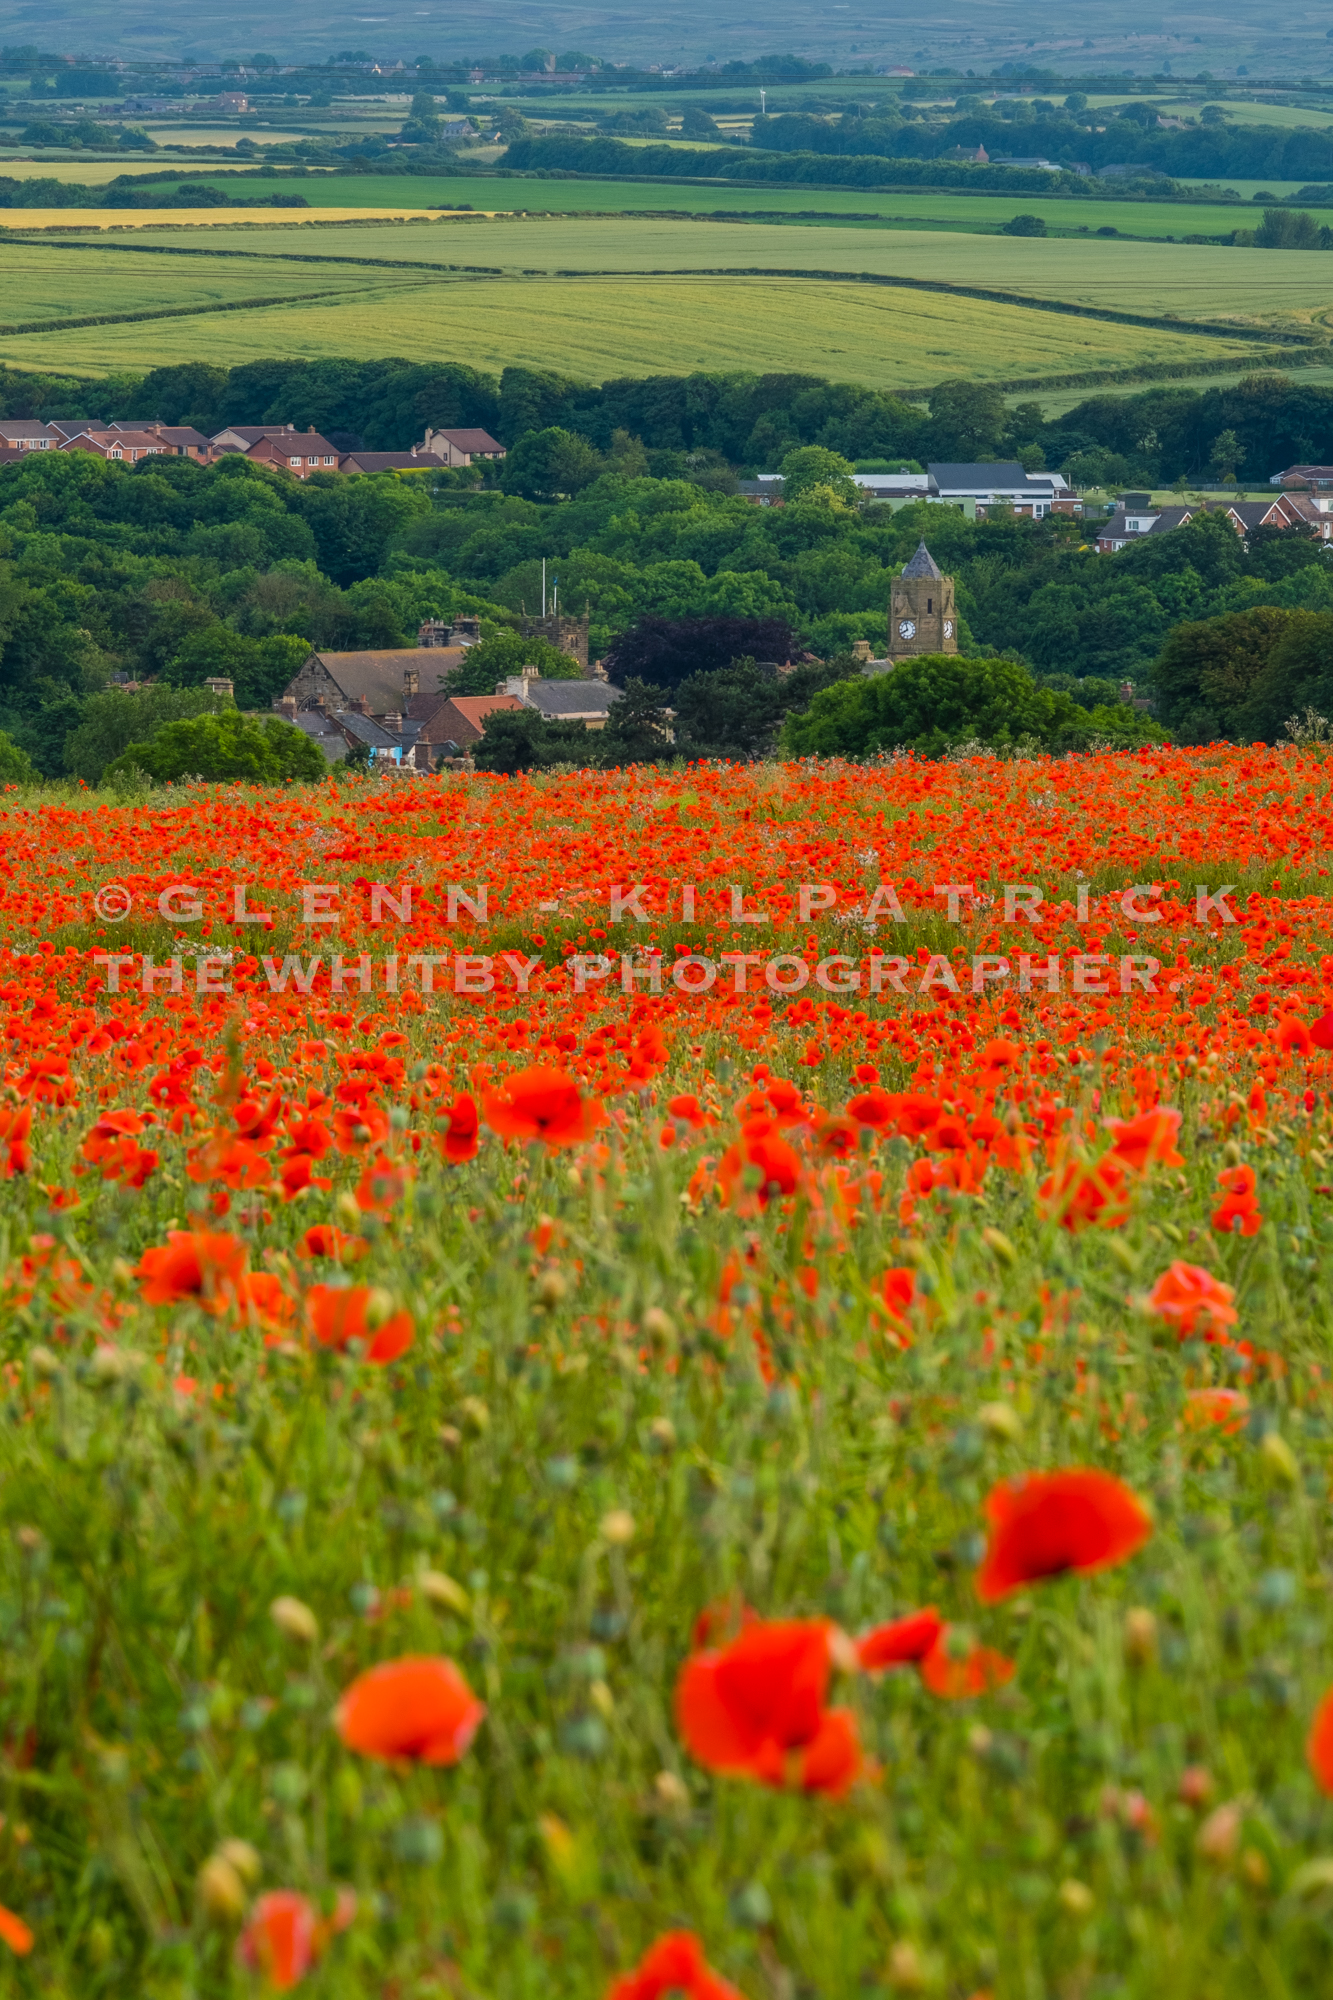 dating in whitby north yorkshire Countryside dating in north yorkshire for rural singles, single farmers, single equestrians and those who enjoy dating country people.